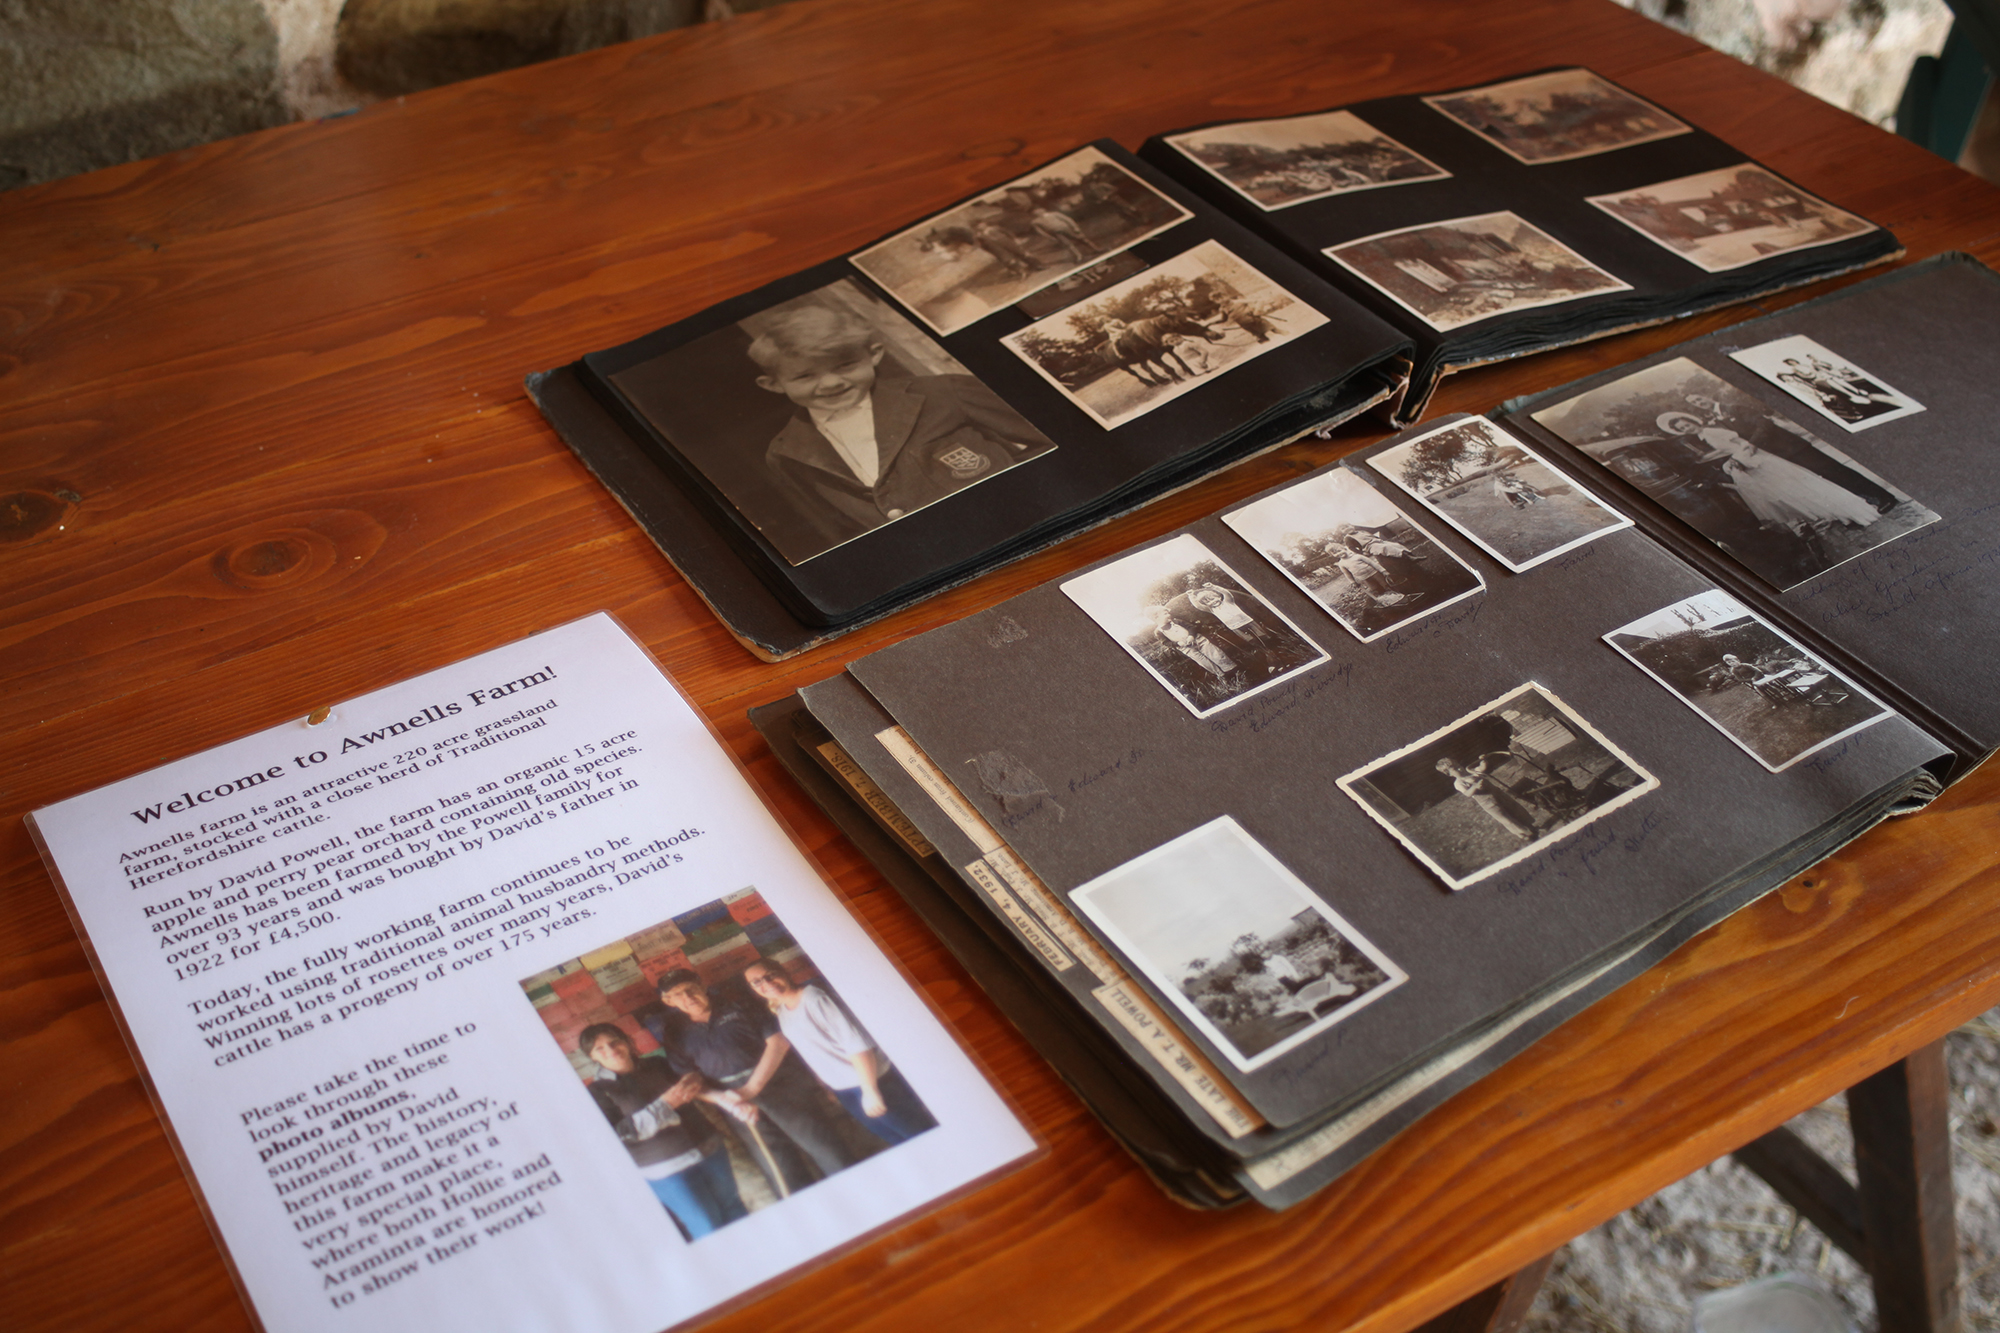 Also on show in the barn were some old photo albums, capturing the farm's history.These proved particularly popular and complimented the heritage of the exhibition's